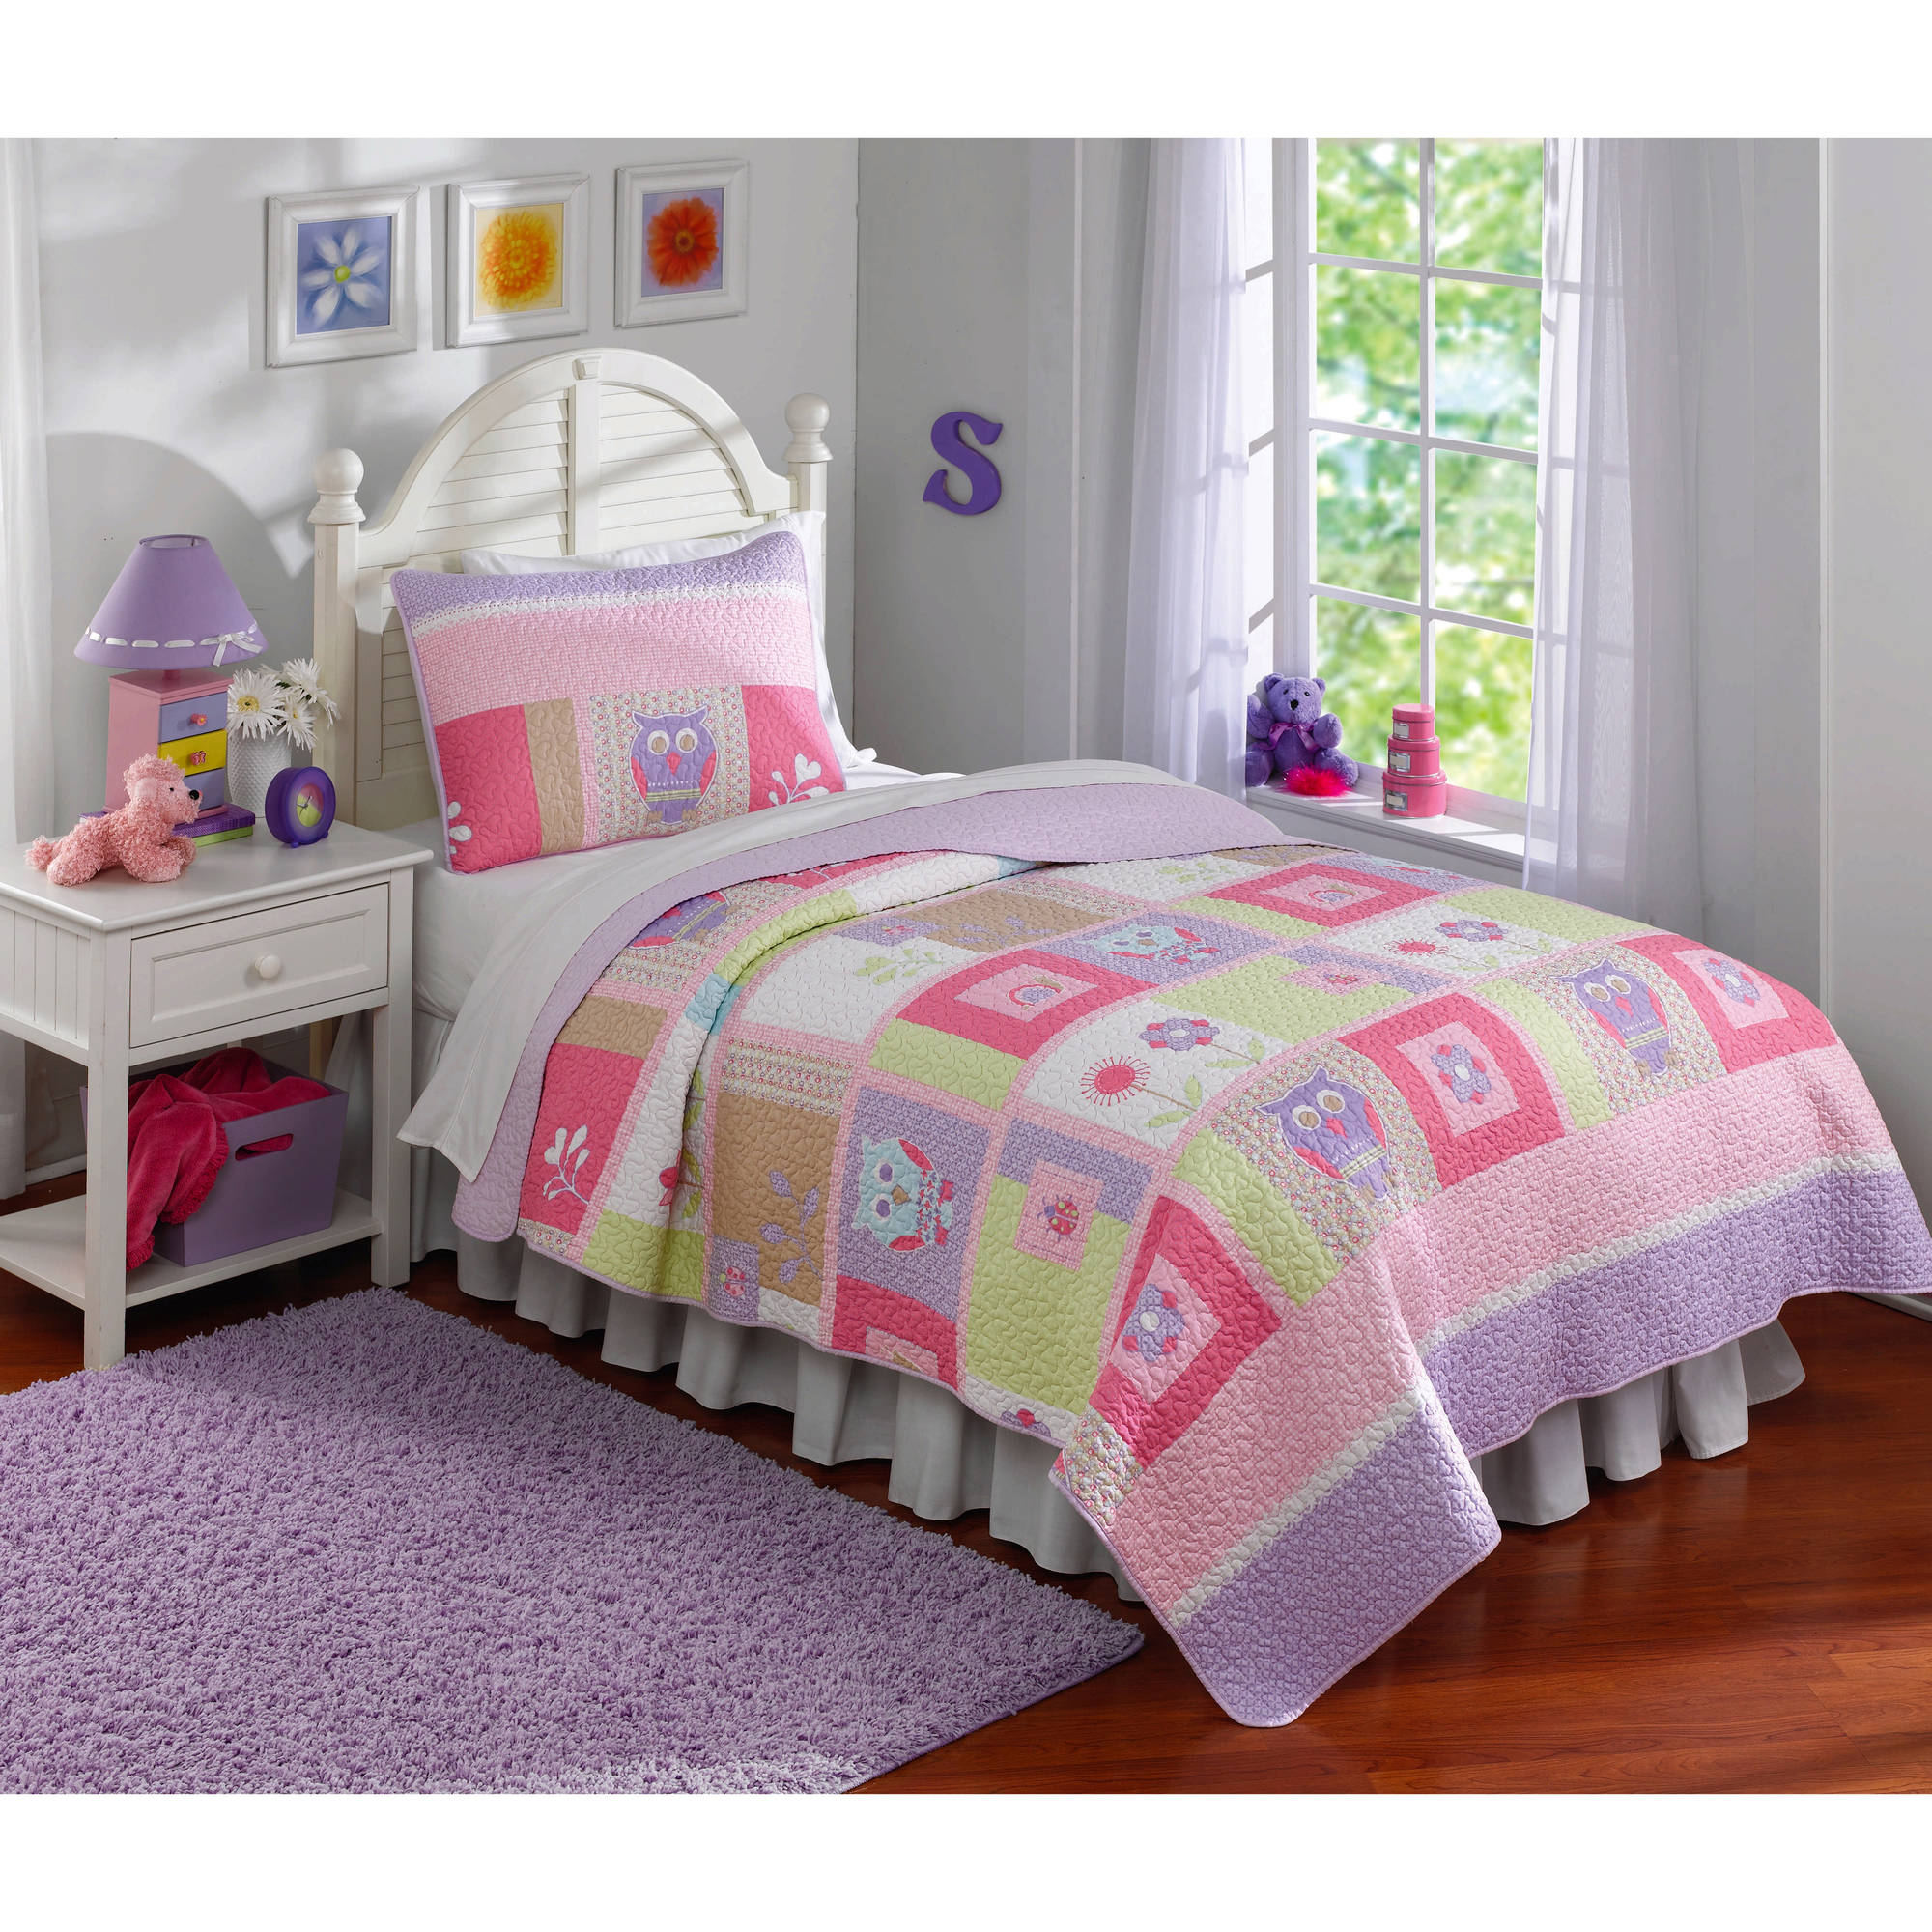 Happy Owls Bedding Quilt Set   Walmart.com